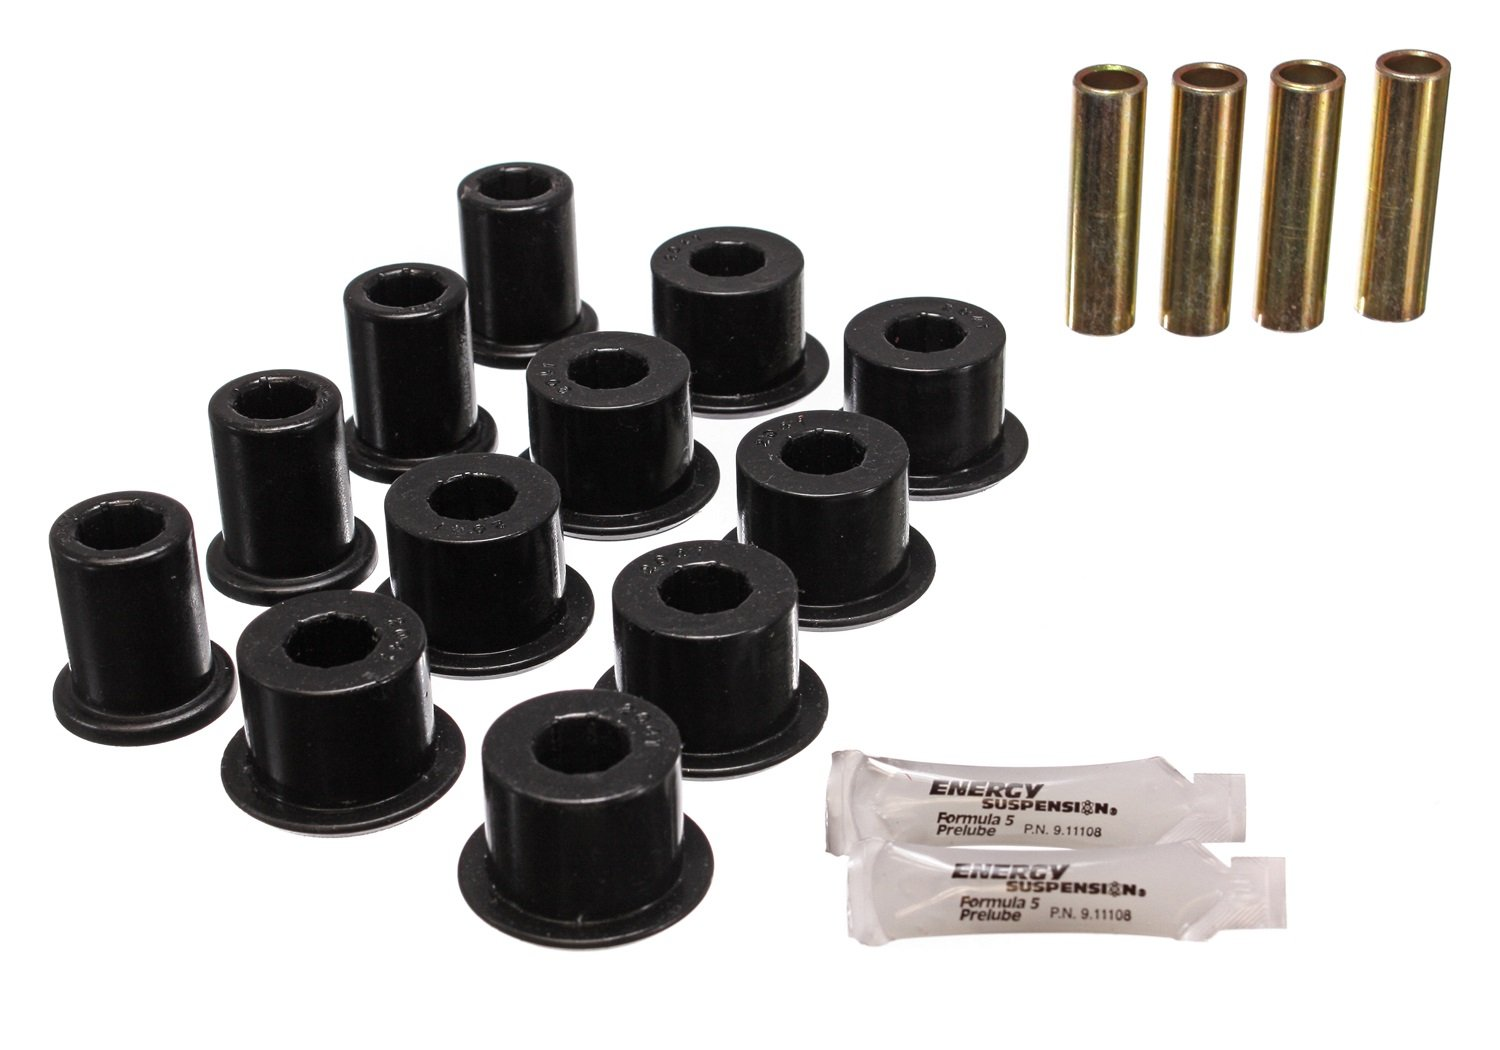 Energy Suspension 8.2108G Rear Spring Shackle Bushing